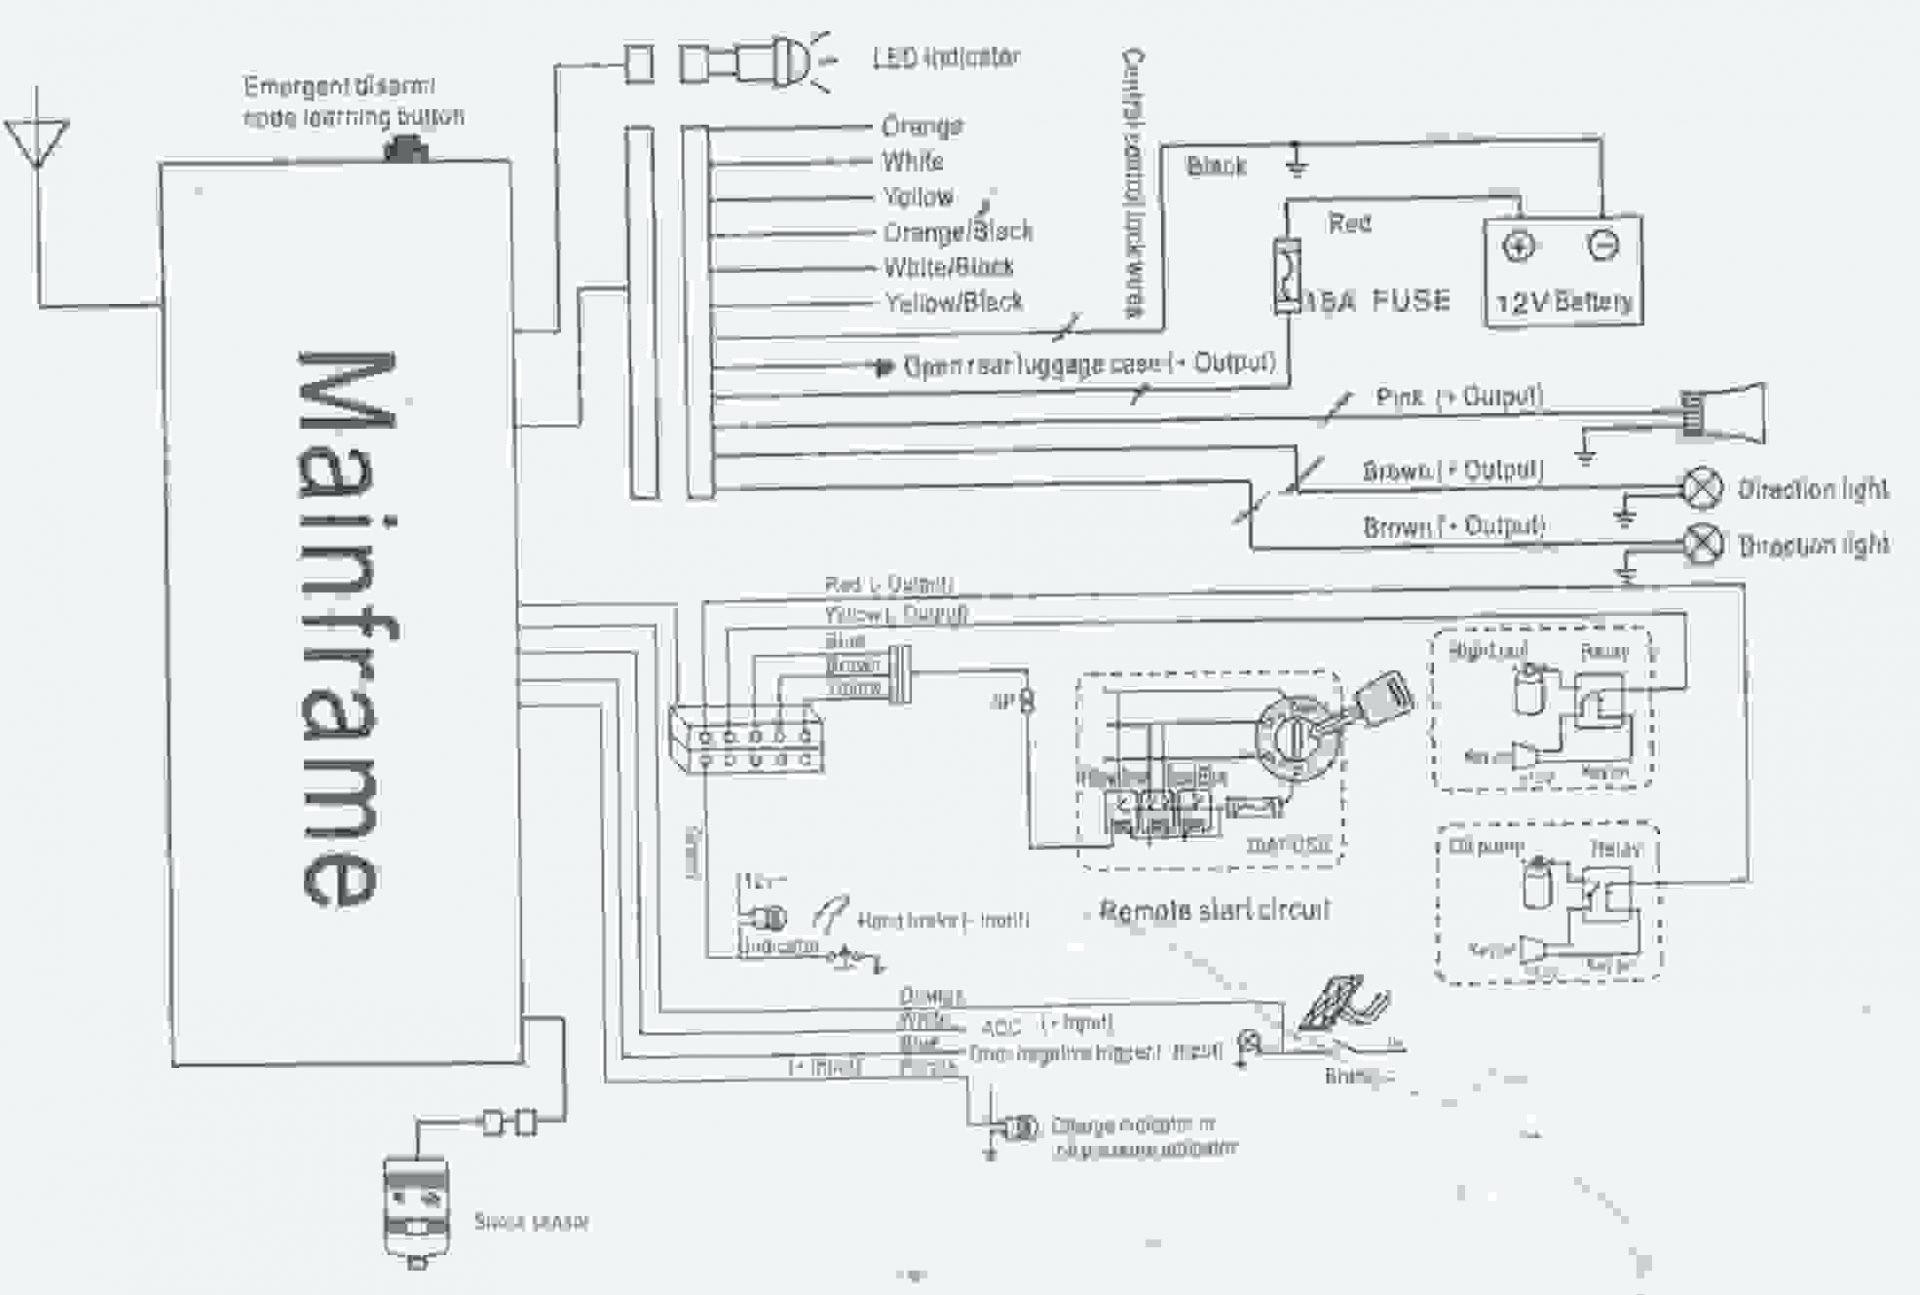 Car Security System Wiring Diagram Lx450 for Car Alarm Wiring Diagram Wiring Diagram New Of Car Security System Wiring Diagram